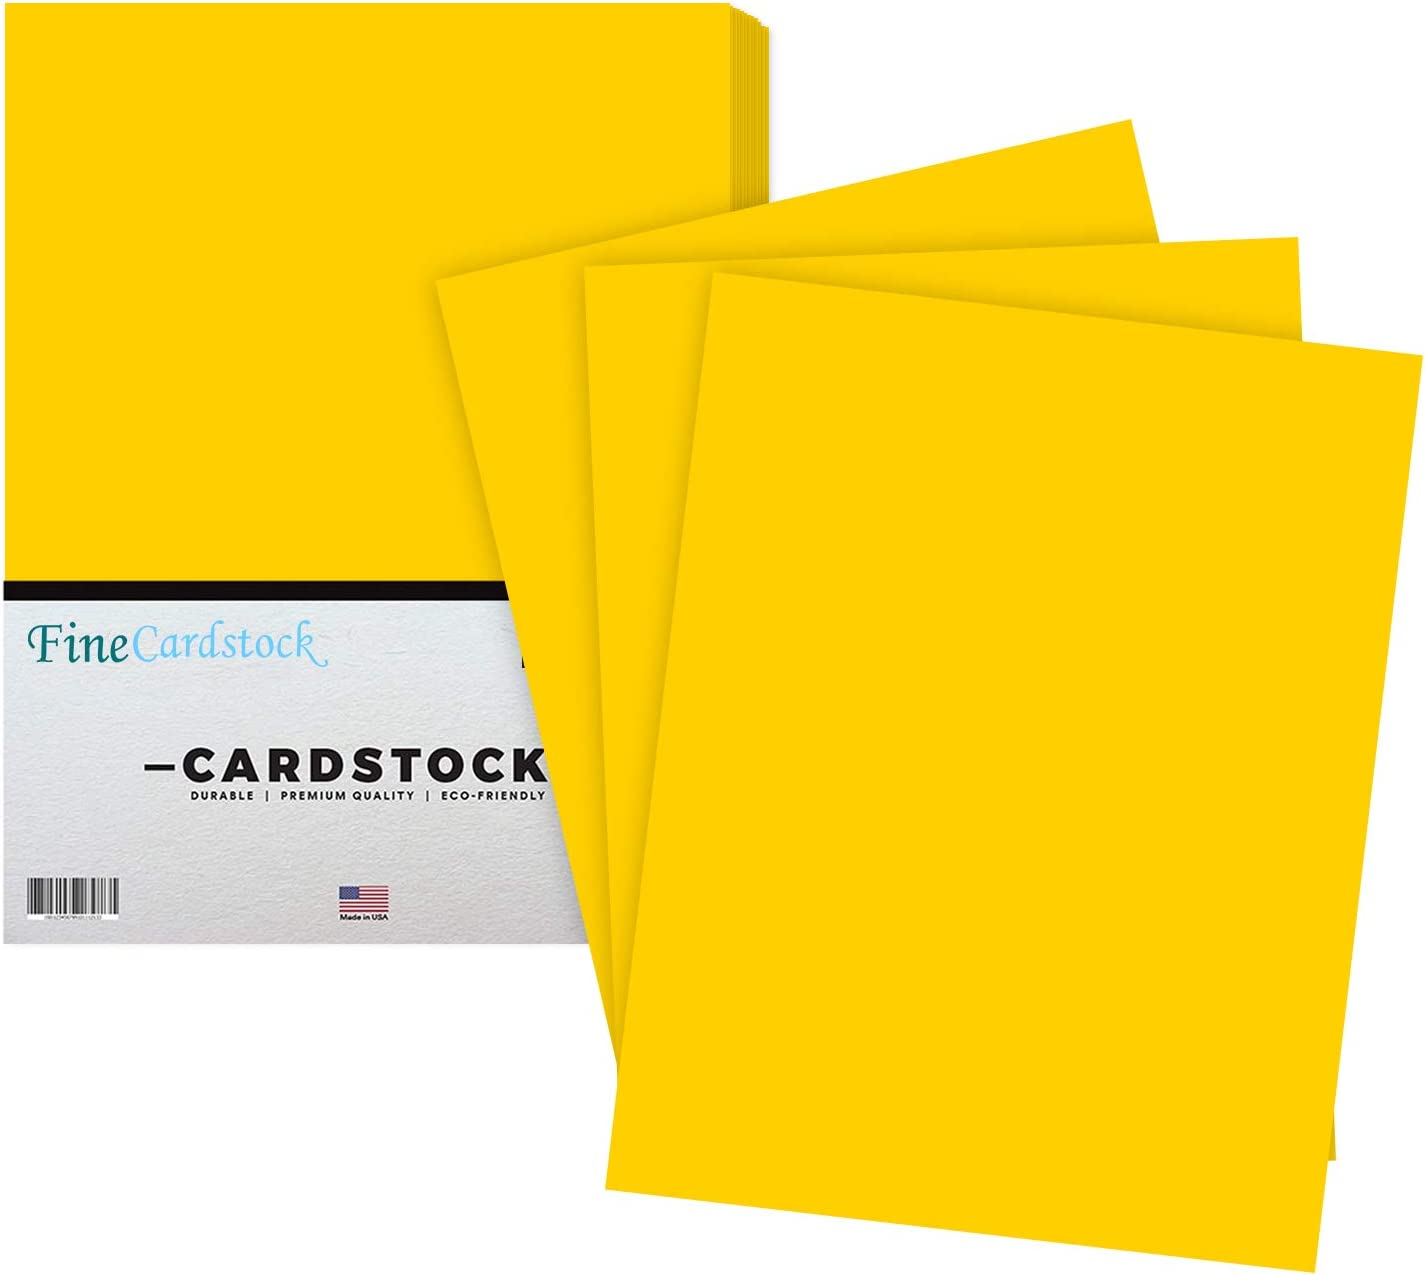 Premium Color Card Stock Paper  5 Per Pack  Superior Thick 5-lb  Cardstock, Perfect for School Supplies, Holiday Crafting, Arts and Crafts   Acid &